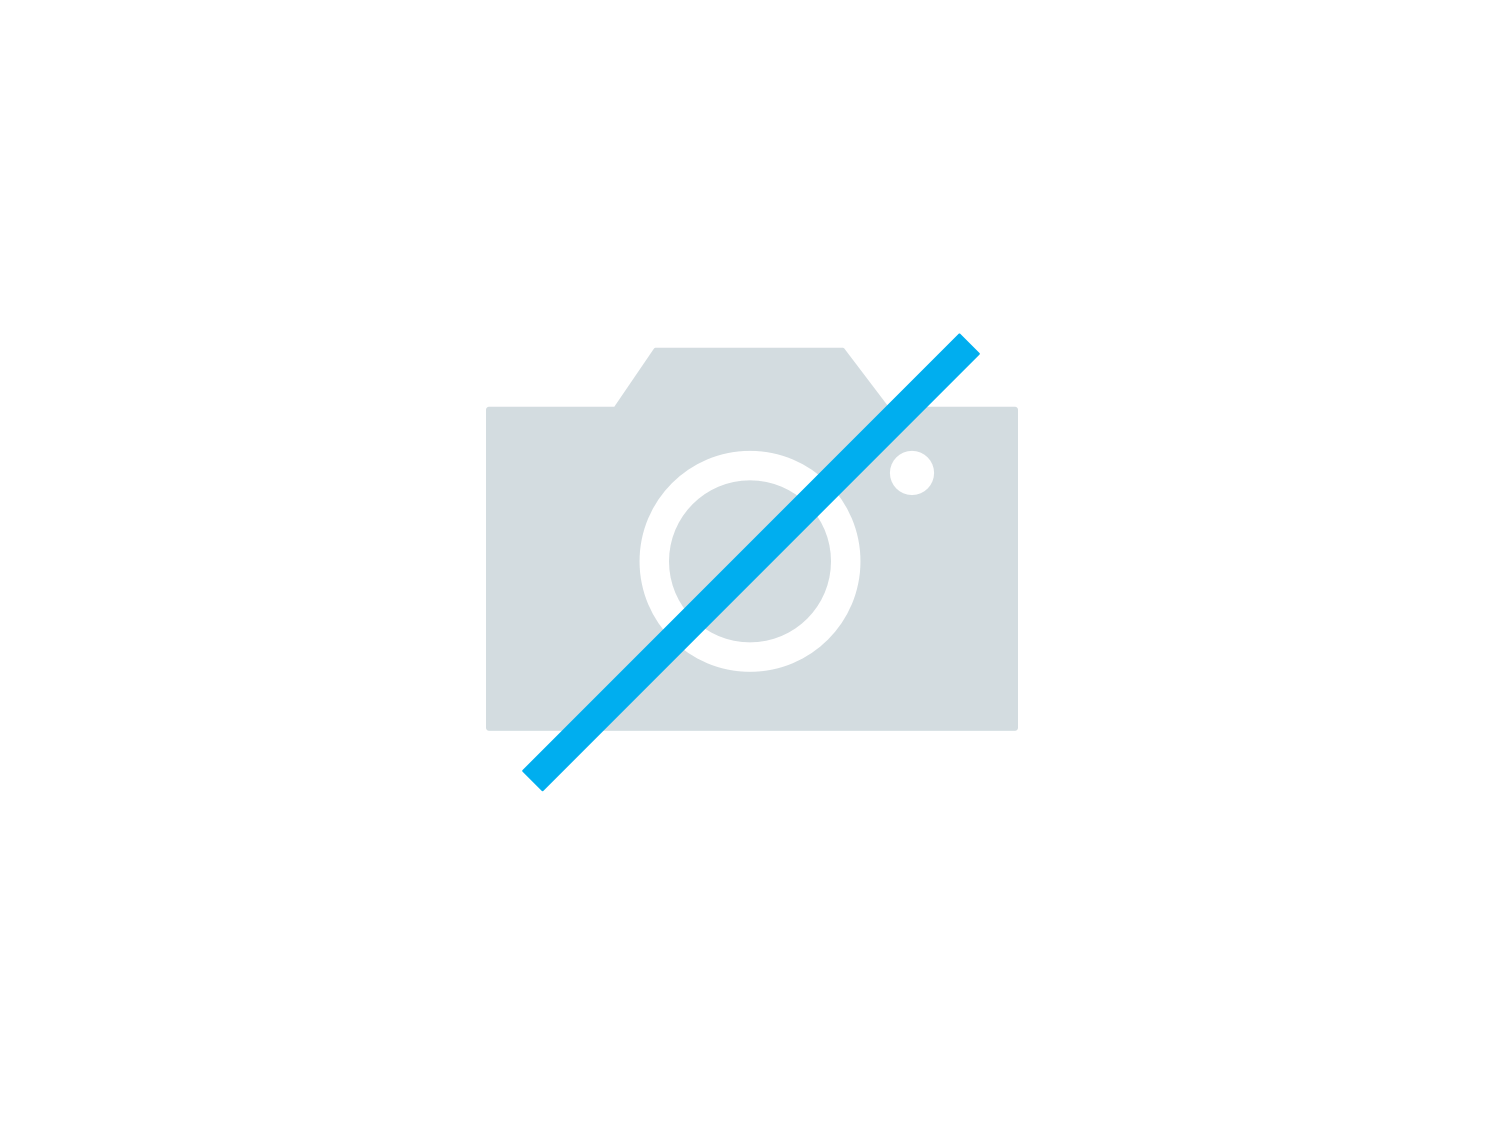 Fauteuil Ollie stof donkergrijs